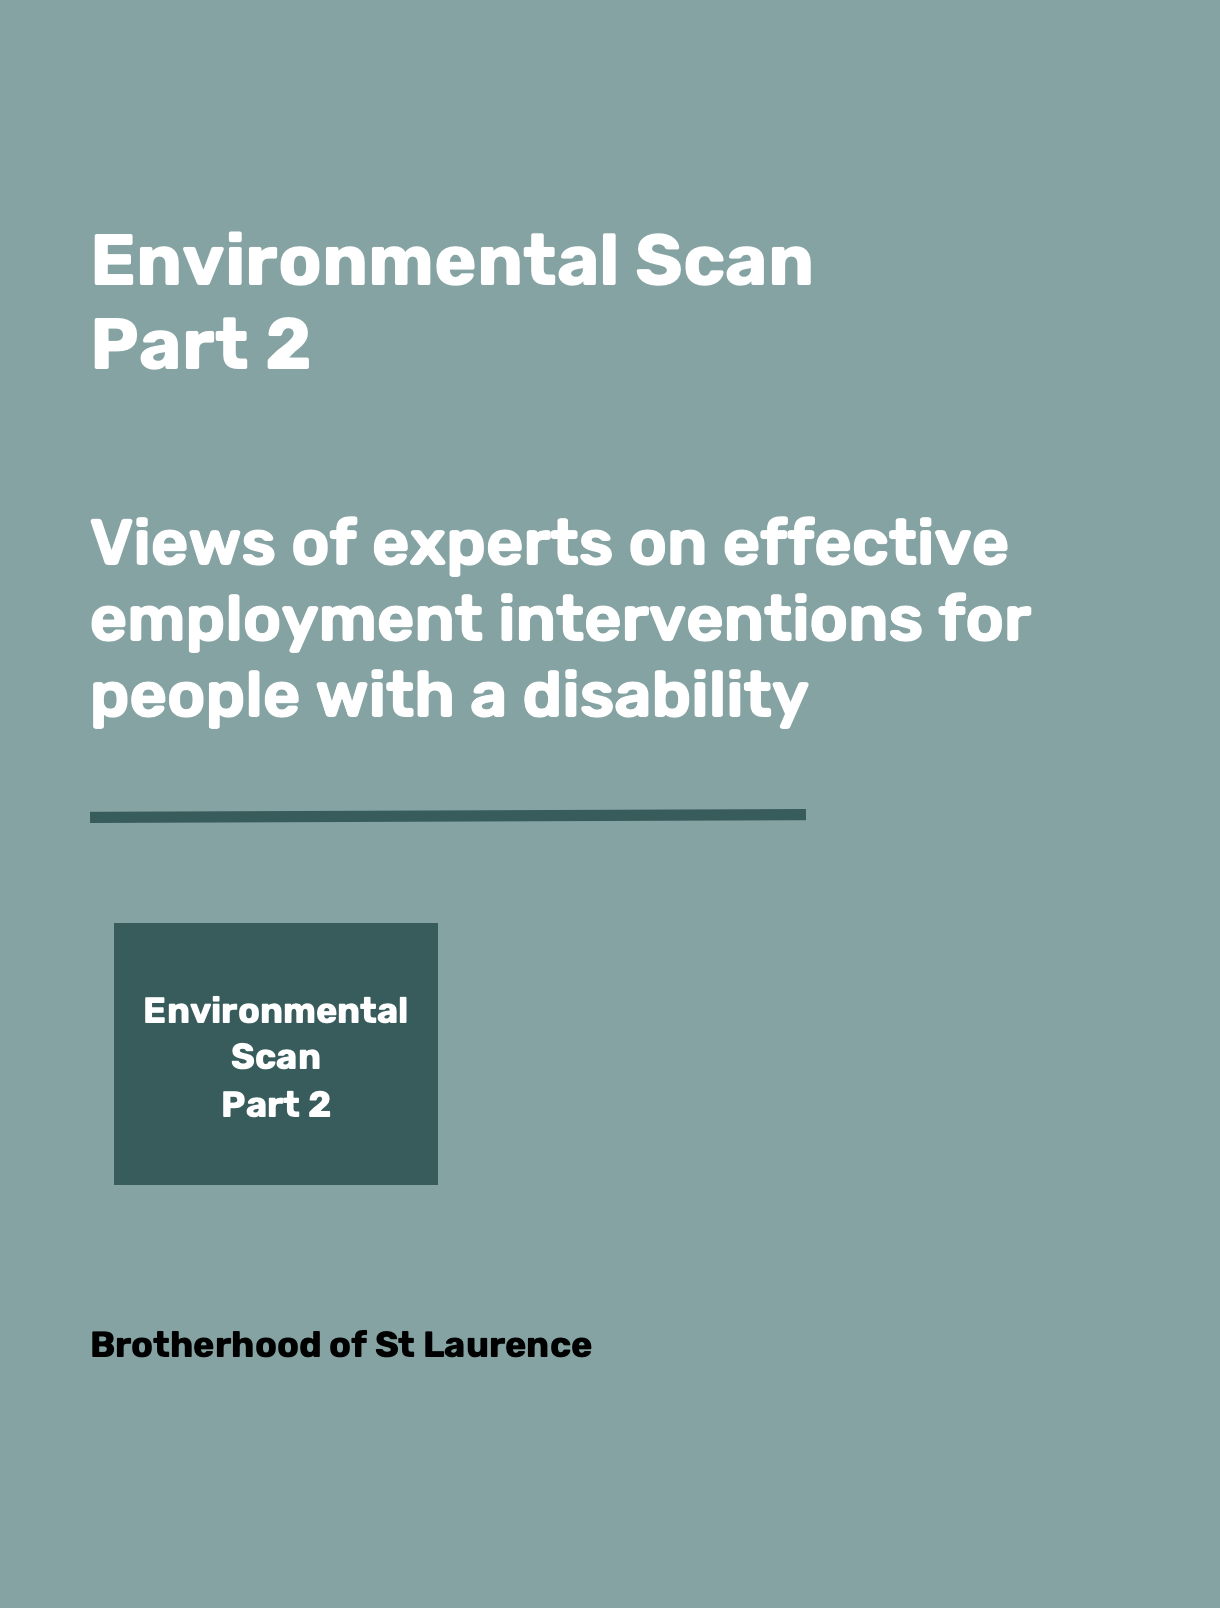 Environmental Scan Part 2 - the views of experts on employment interventions for People with Disability